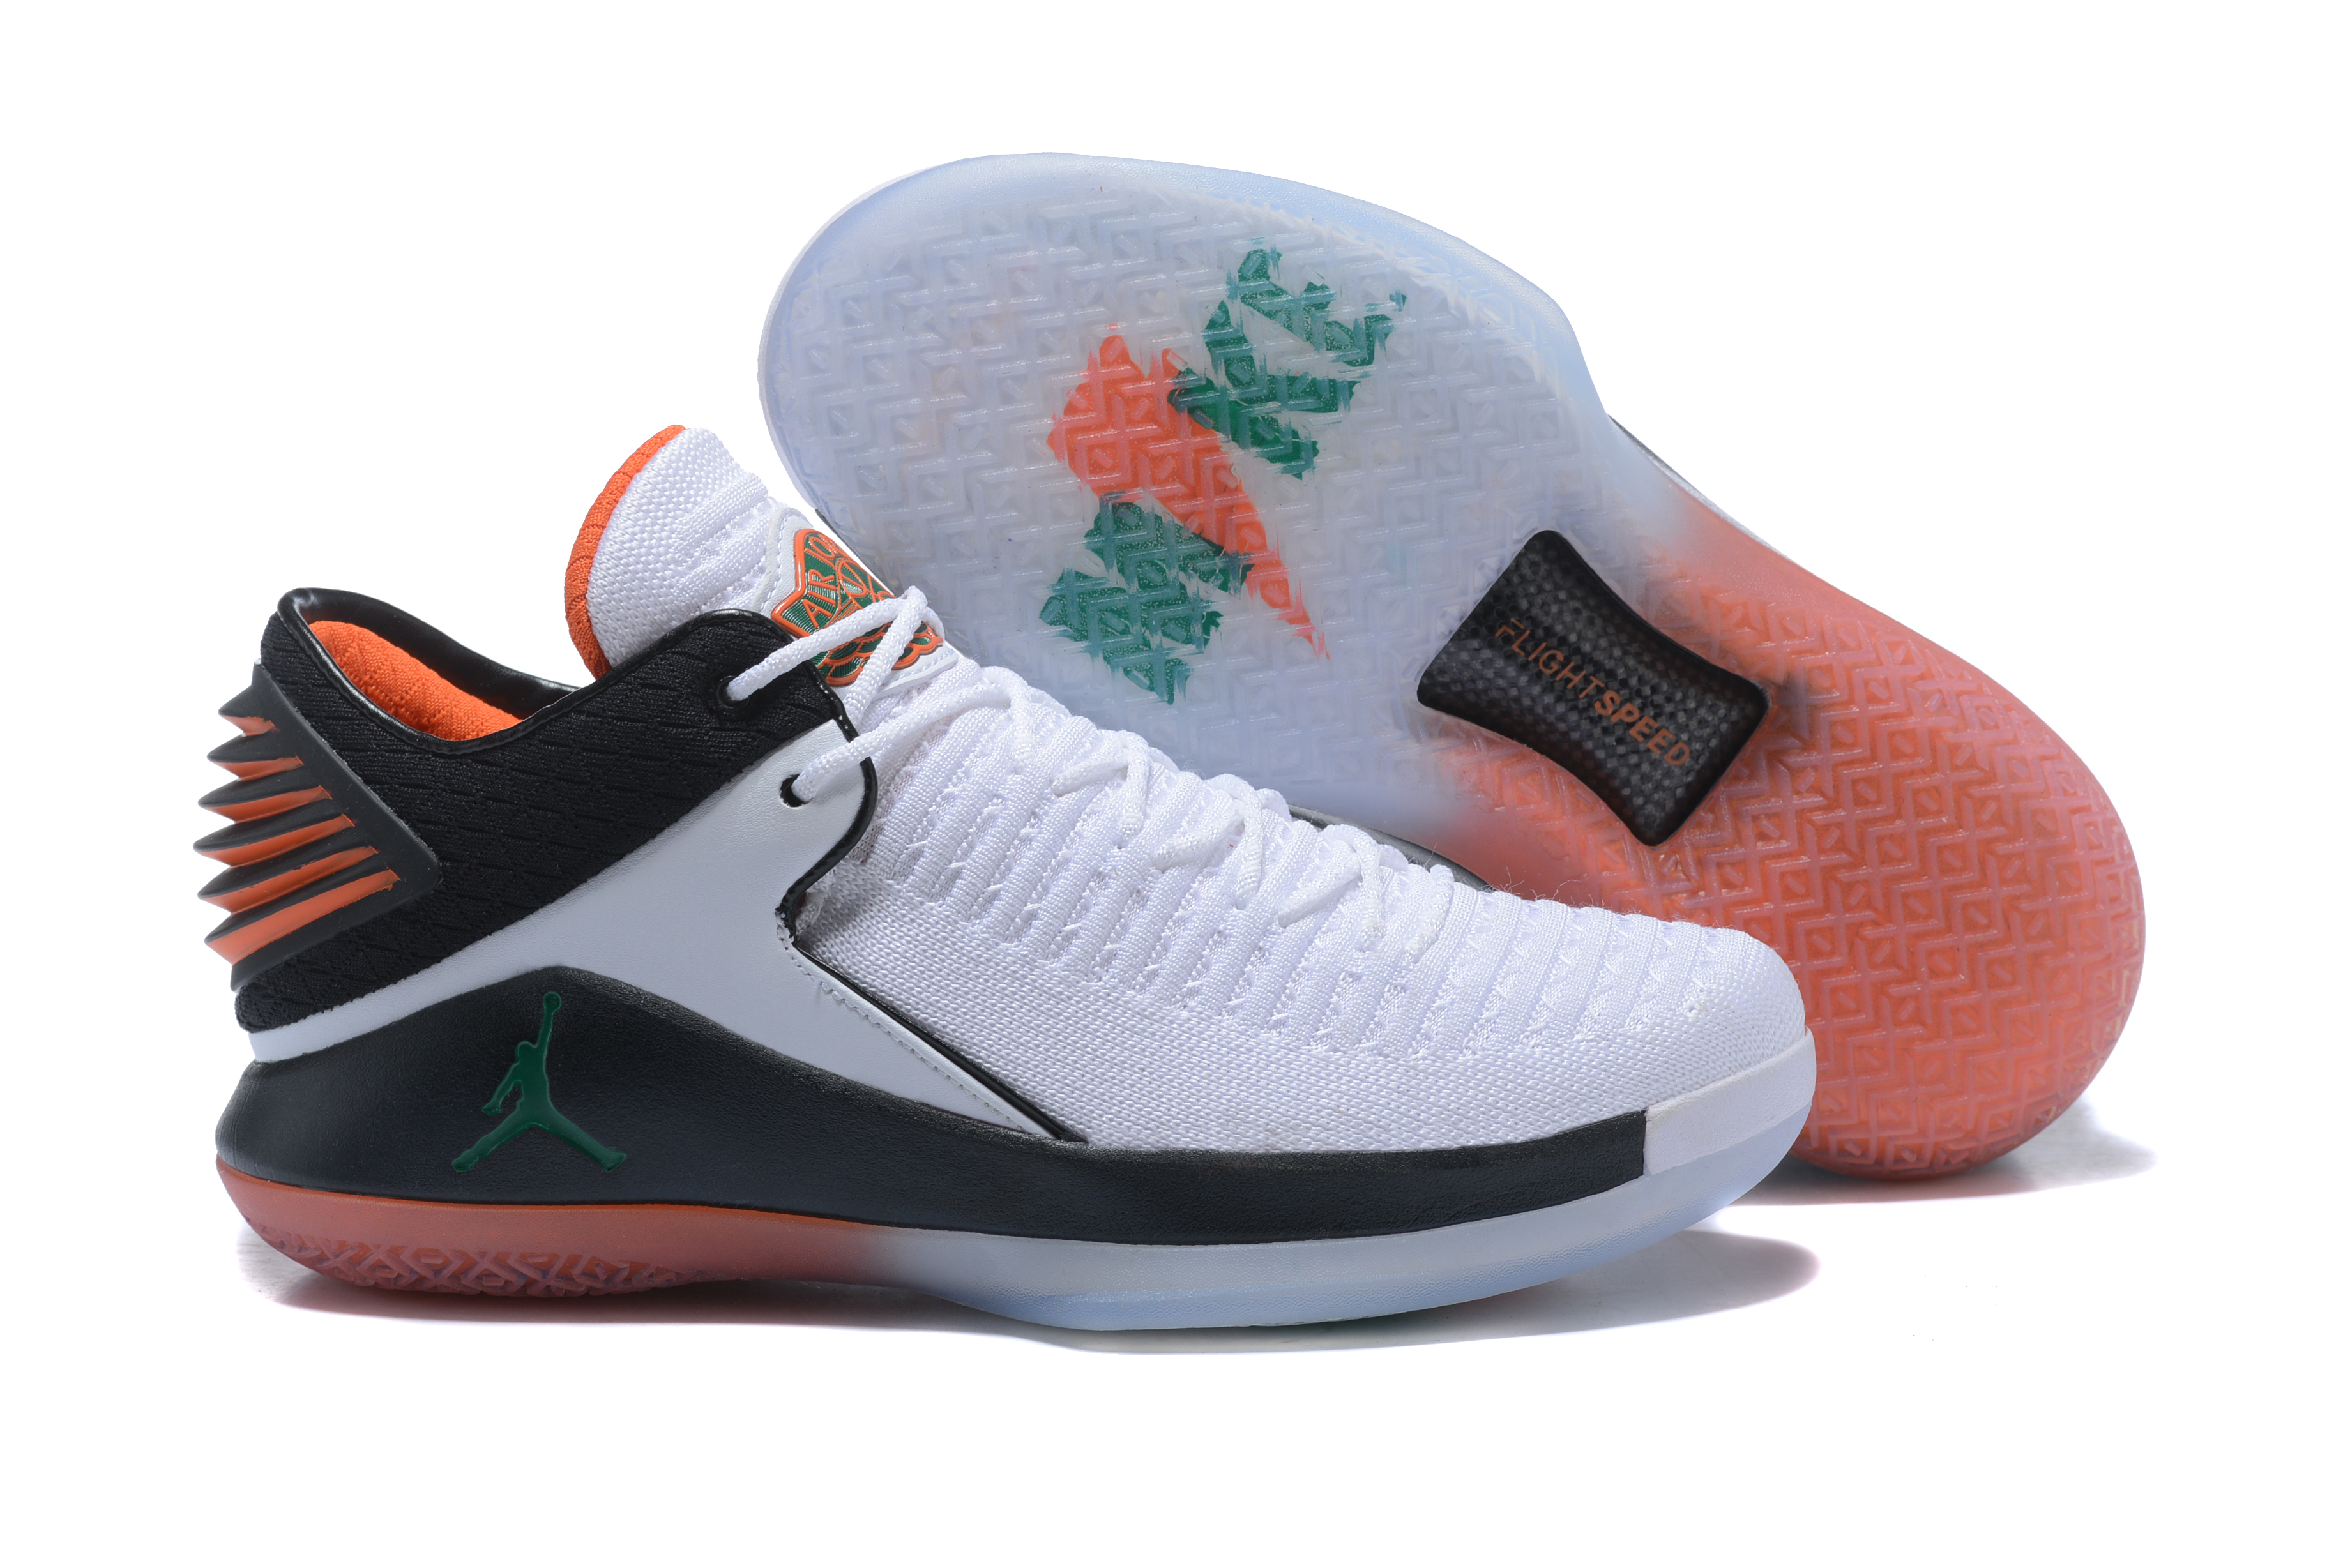 New Air Jordan 32 Low Gatorade White Black Orange